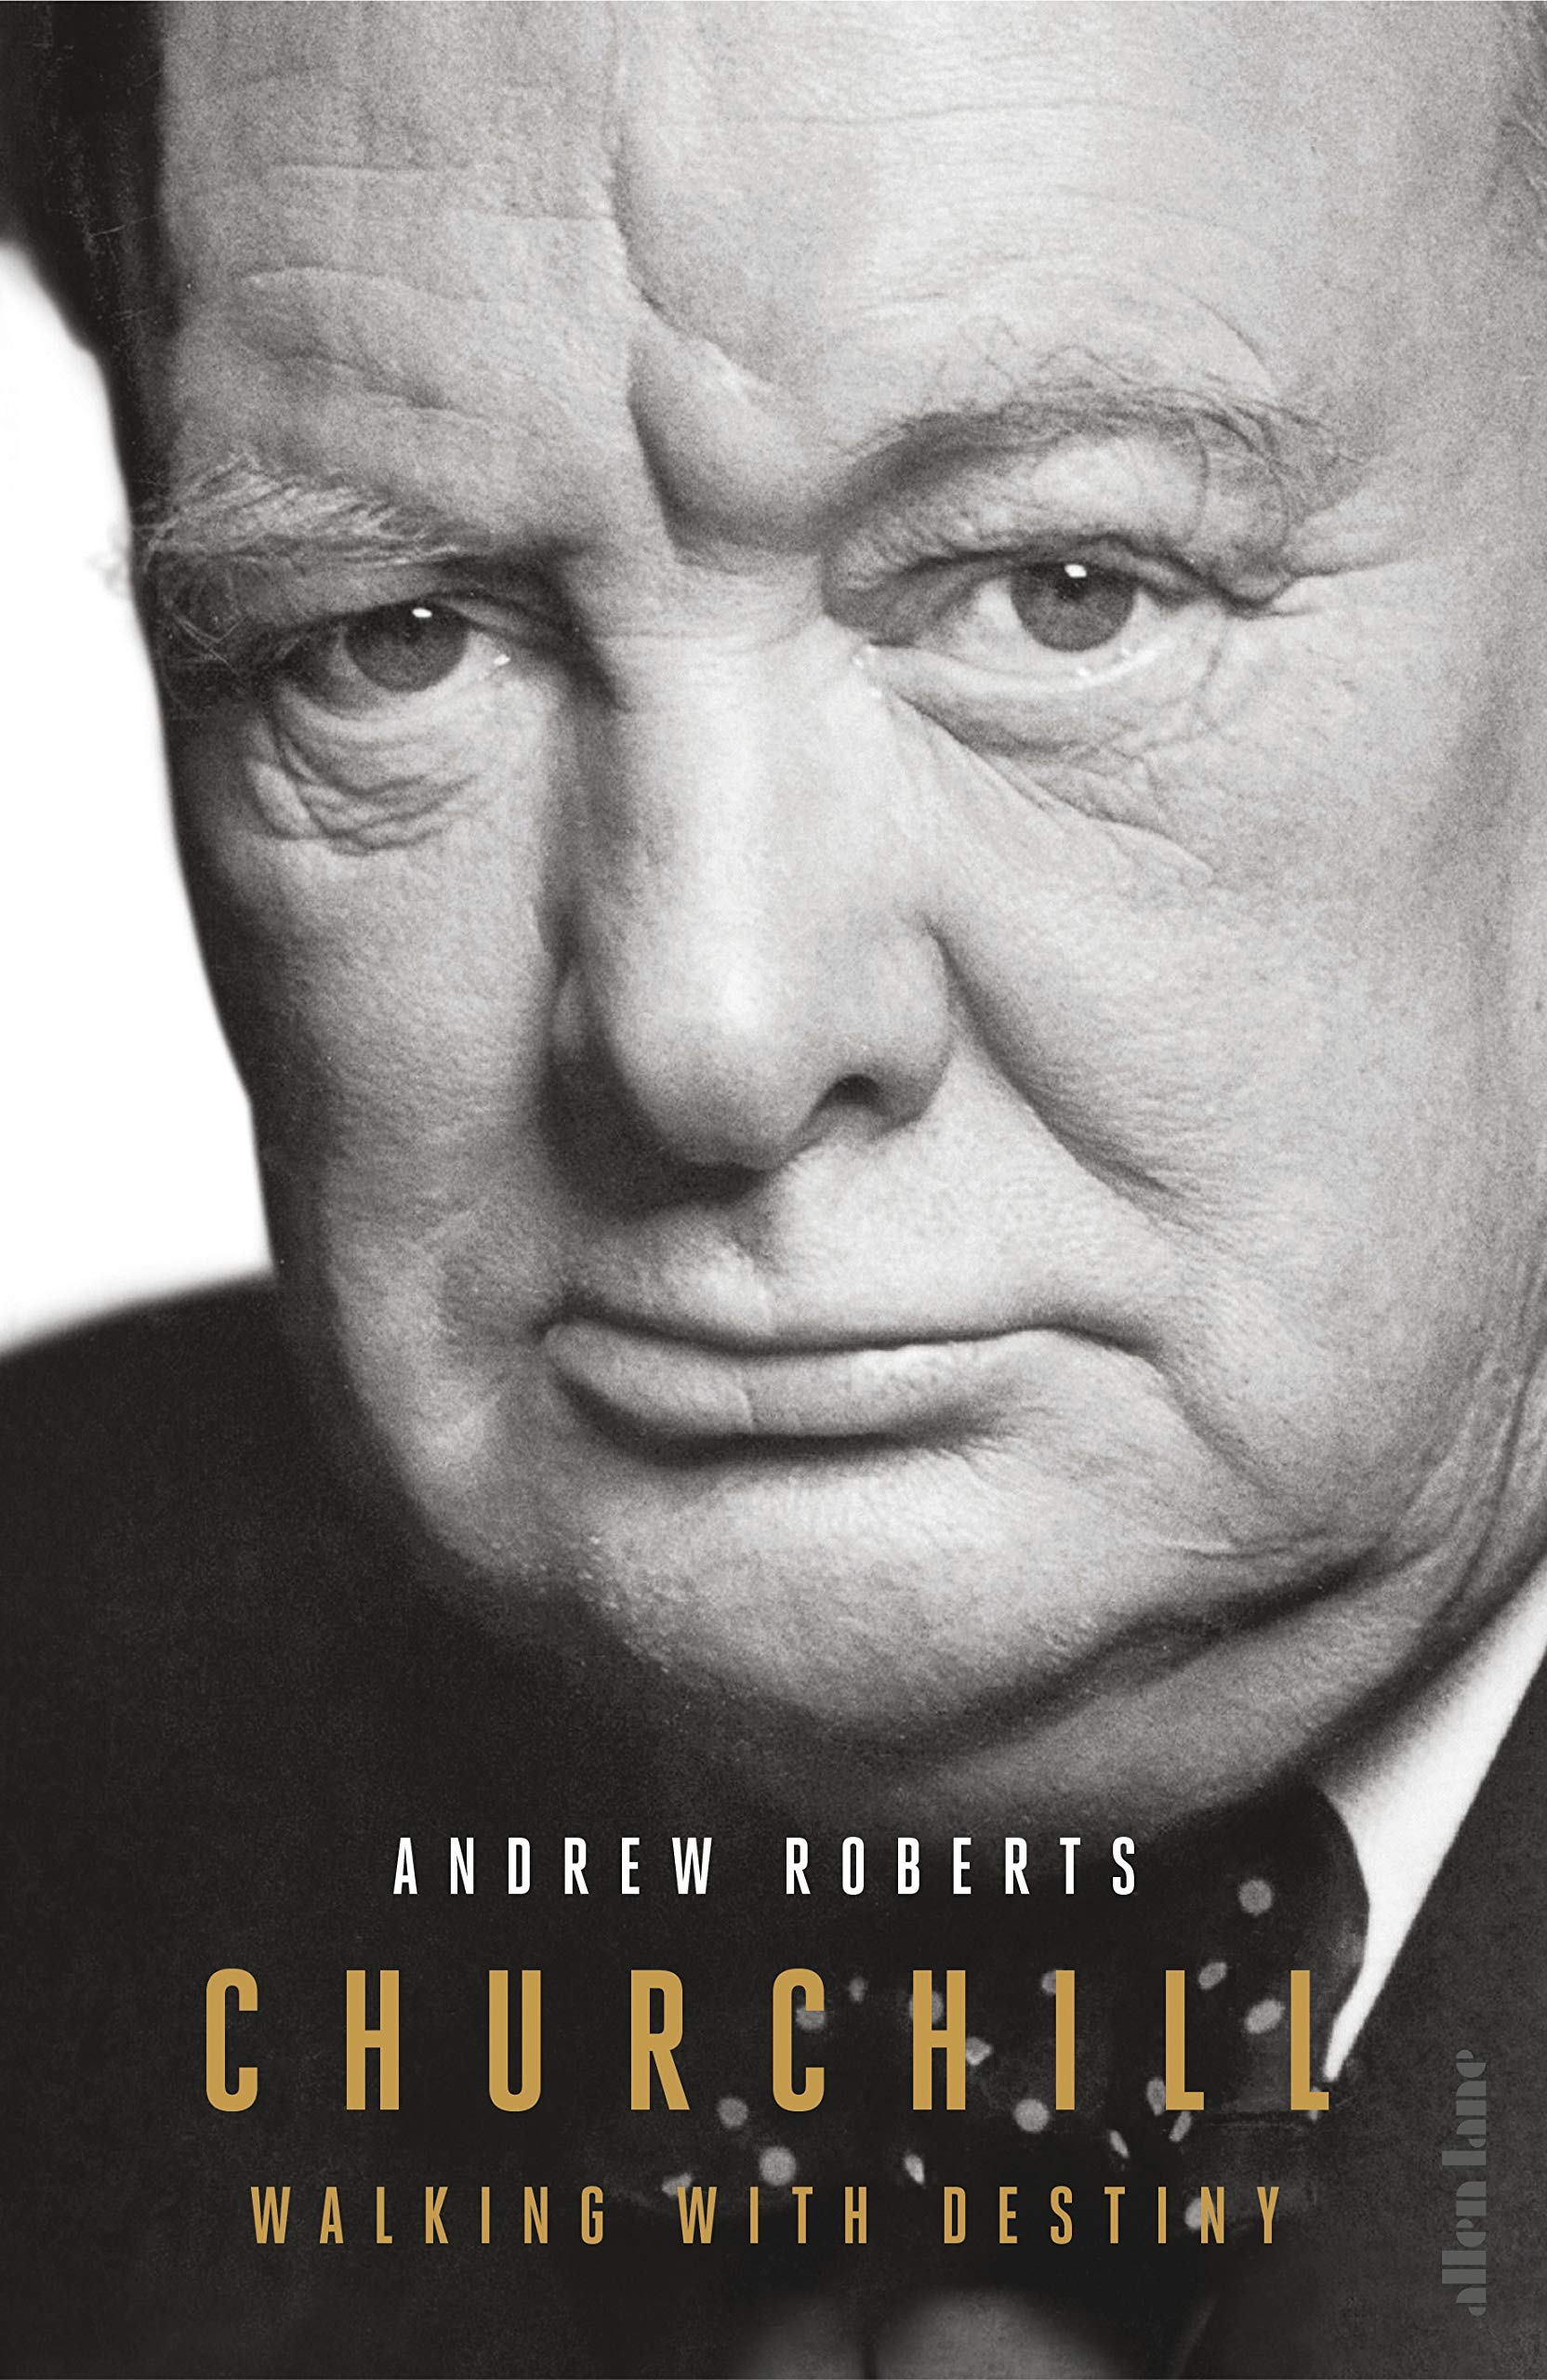 Image result for andrew roberts churchill walking with destiny